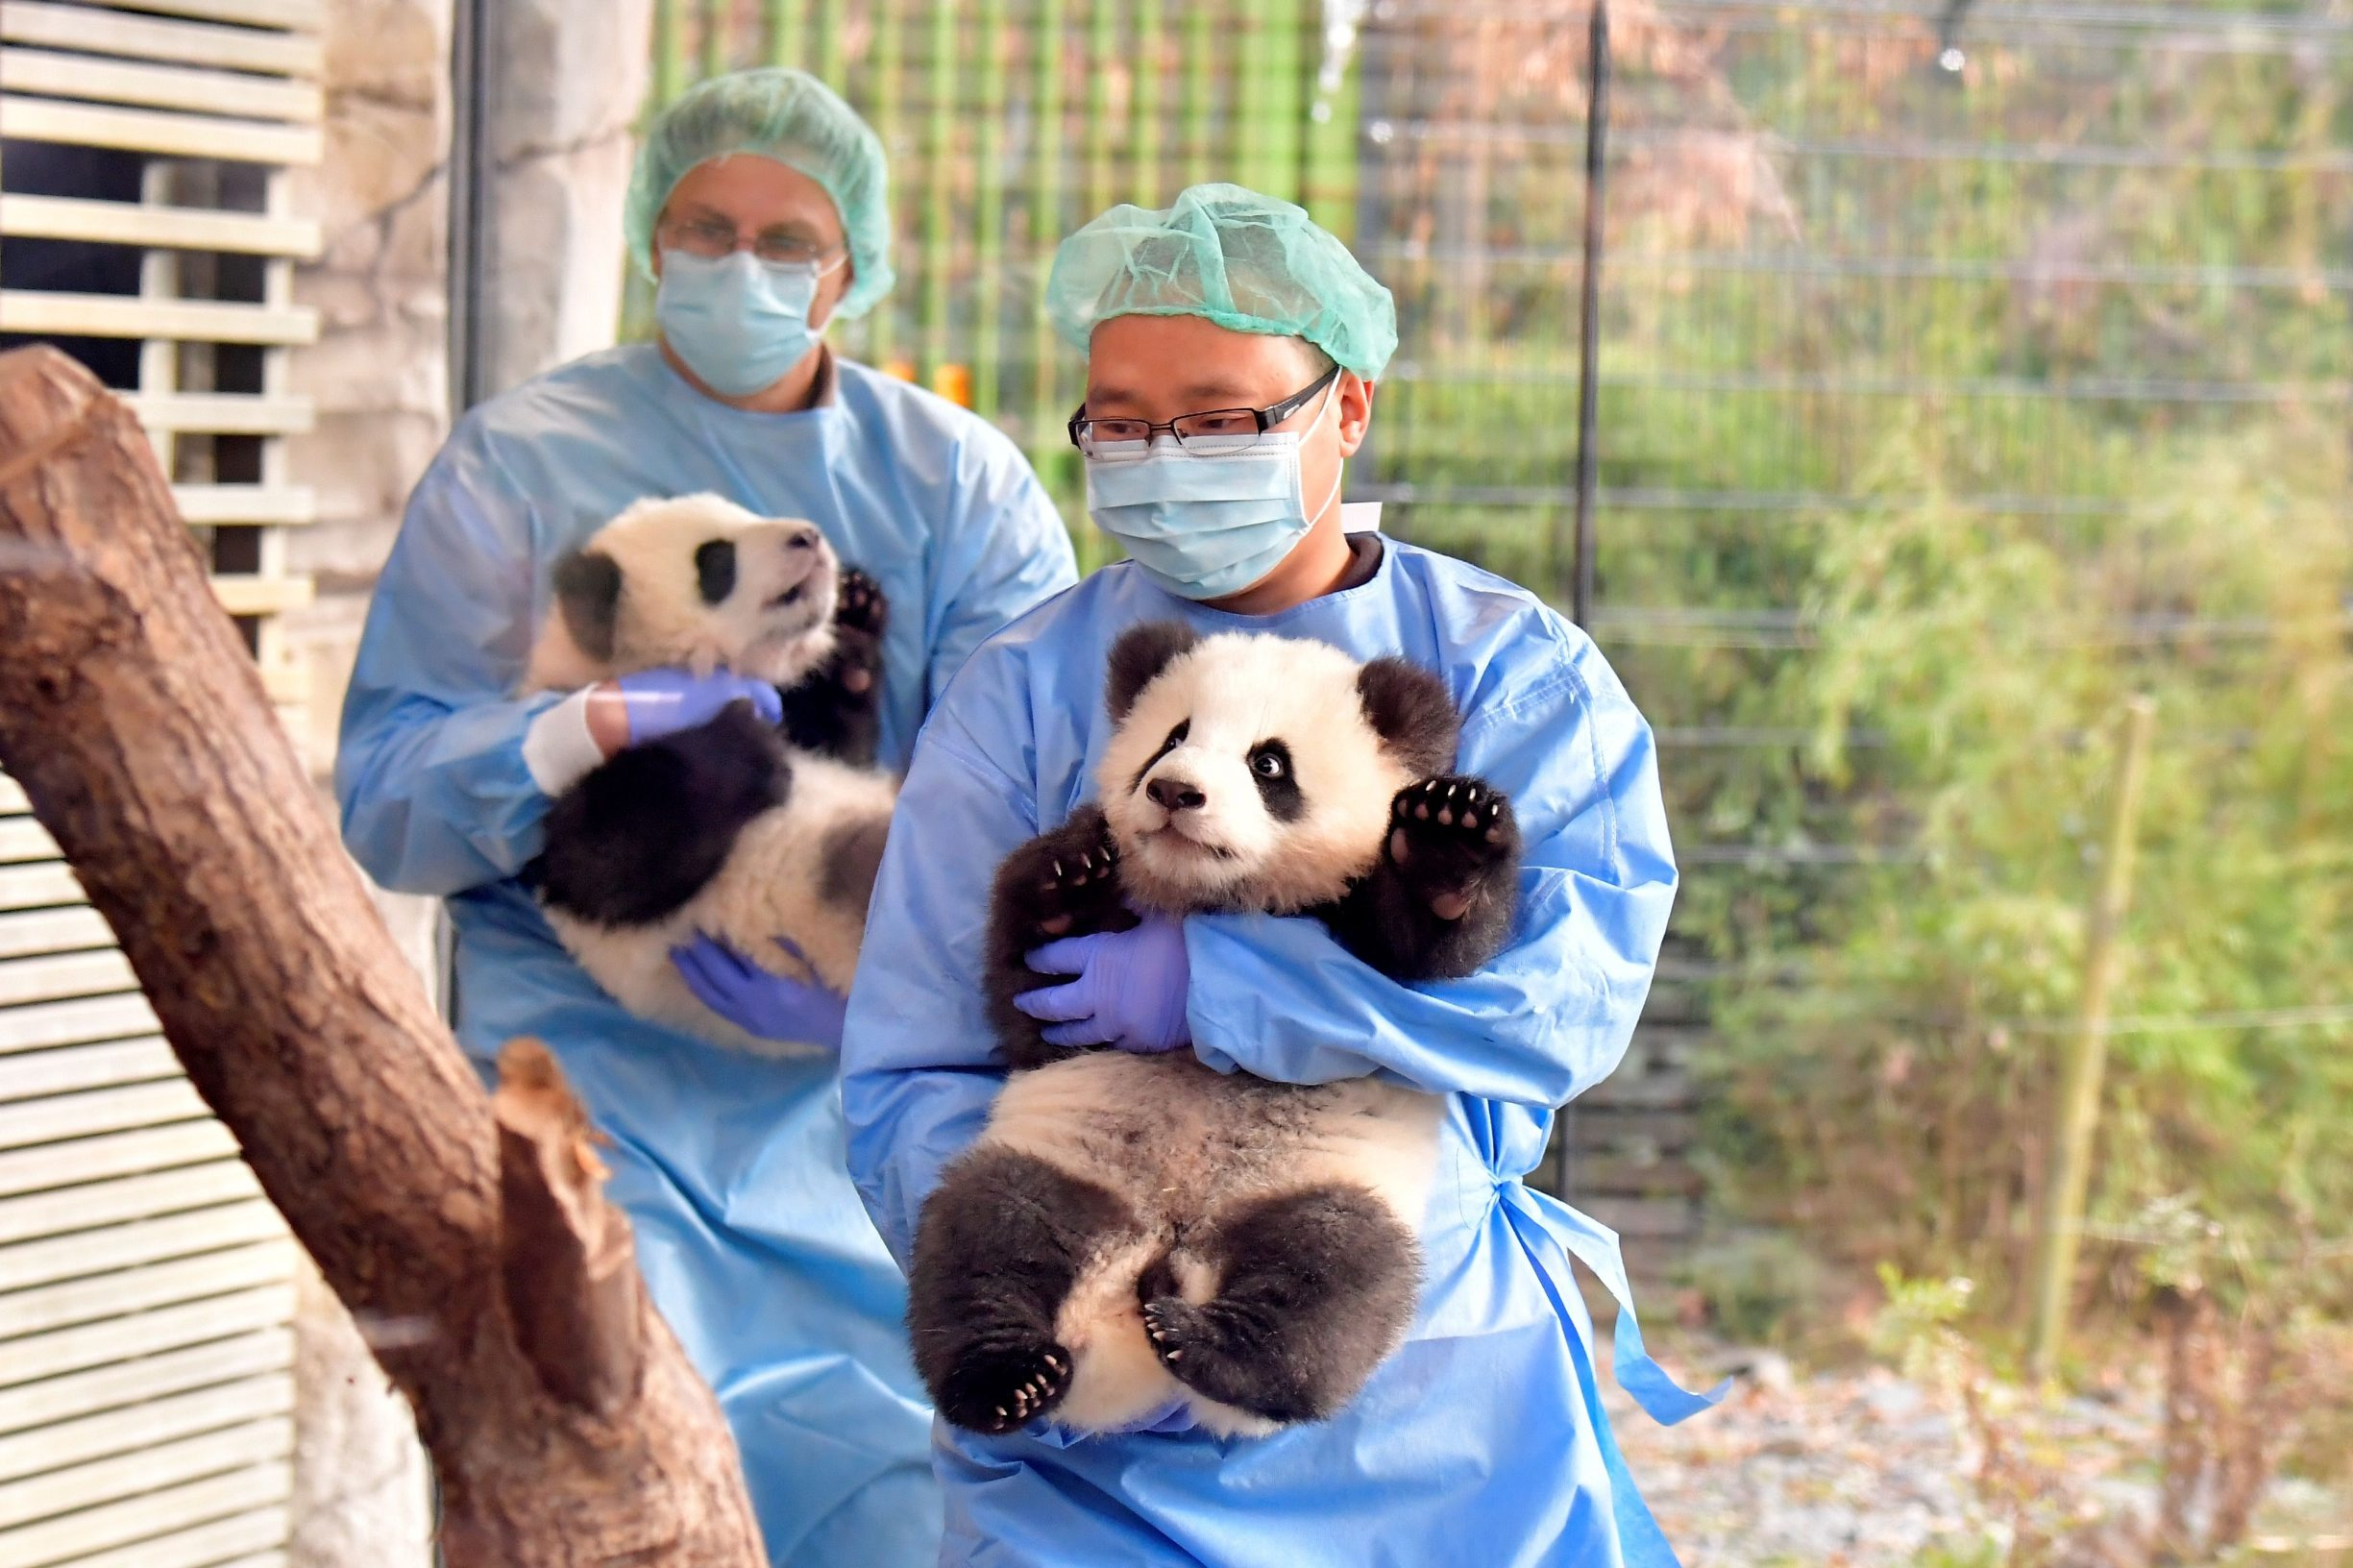 A picture taken behind a window on January 29, 2020 shows keepers, including Yang Cheng (R) carrying Meng Yuan and Meng Xiang, two Berlin-born Chinese panda cubs, in their enclosure during their first presentation to the public at the Zoologischer Garten zoo in Berlin. - Meng Meng gave birth to twins on August 31, 2019. On loan from China, Meng Meng and male panda Jiao Qing arrived in Berlin in June 2017. While the cubs, Meng Yuan and Meng Xiang, are born in Berlin, they remain Chinese and must be returned to China within four years after they have been weaned. (Photo by Tobias SCHWARZ / AFP)